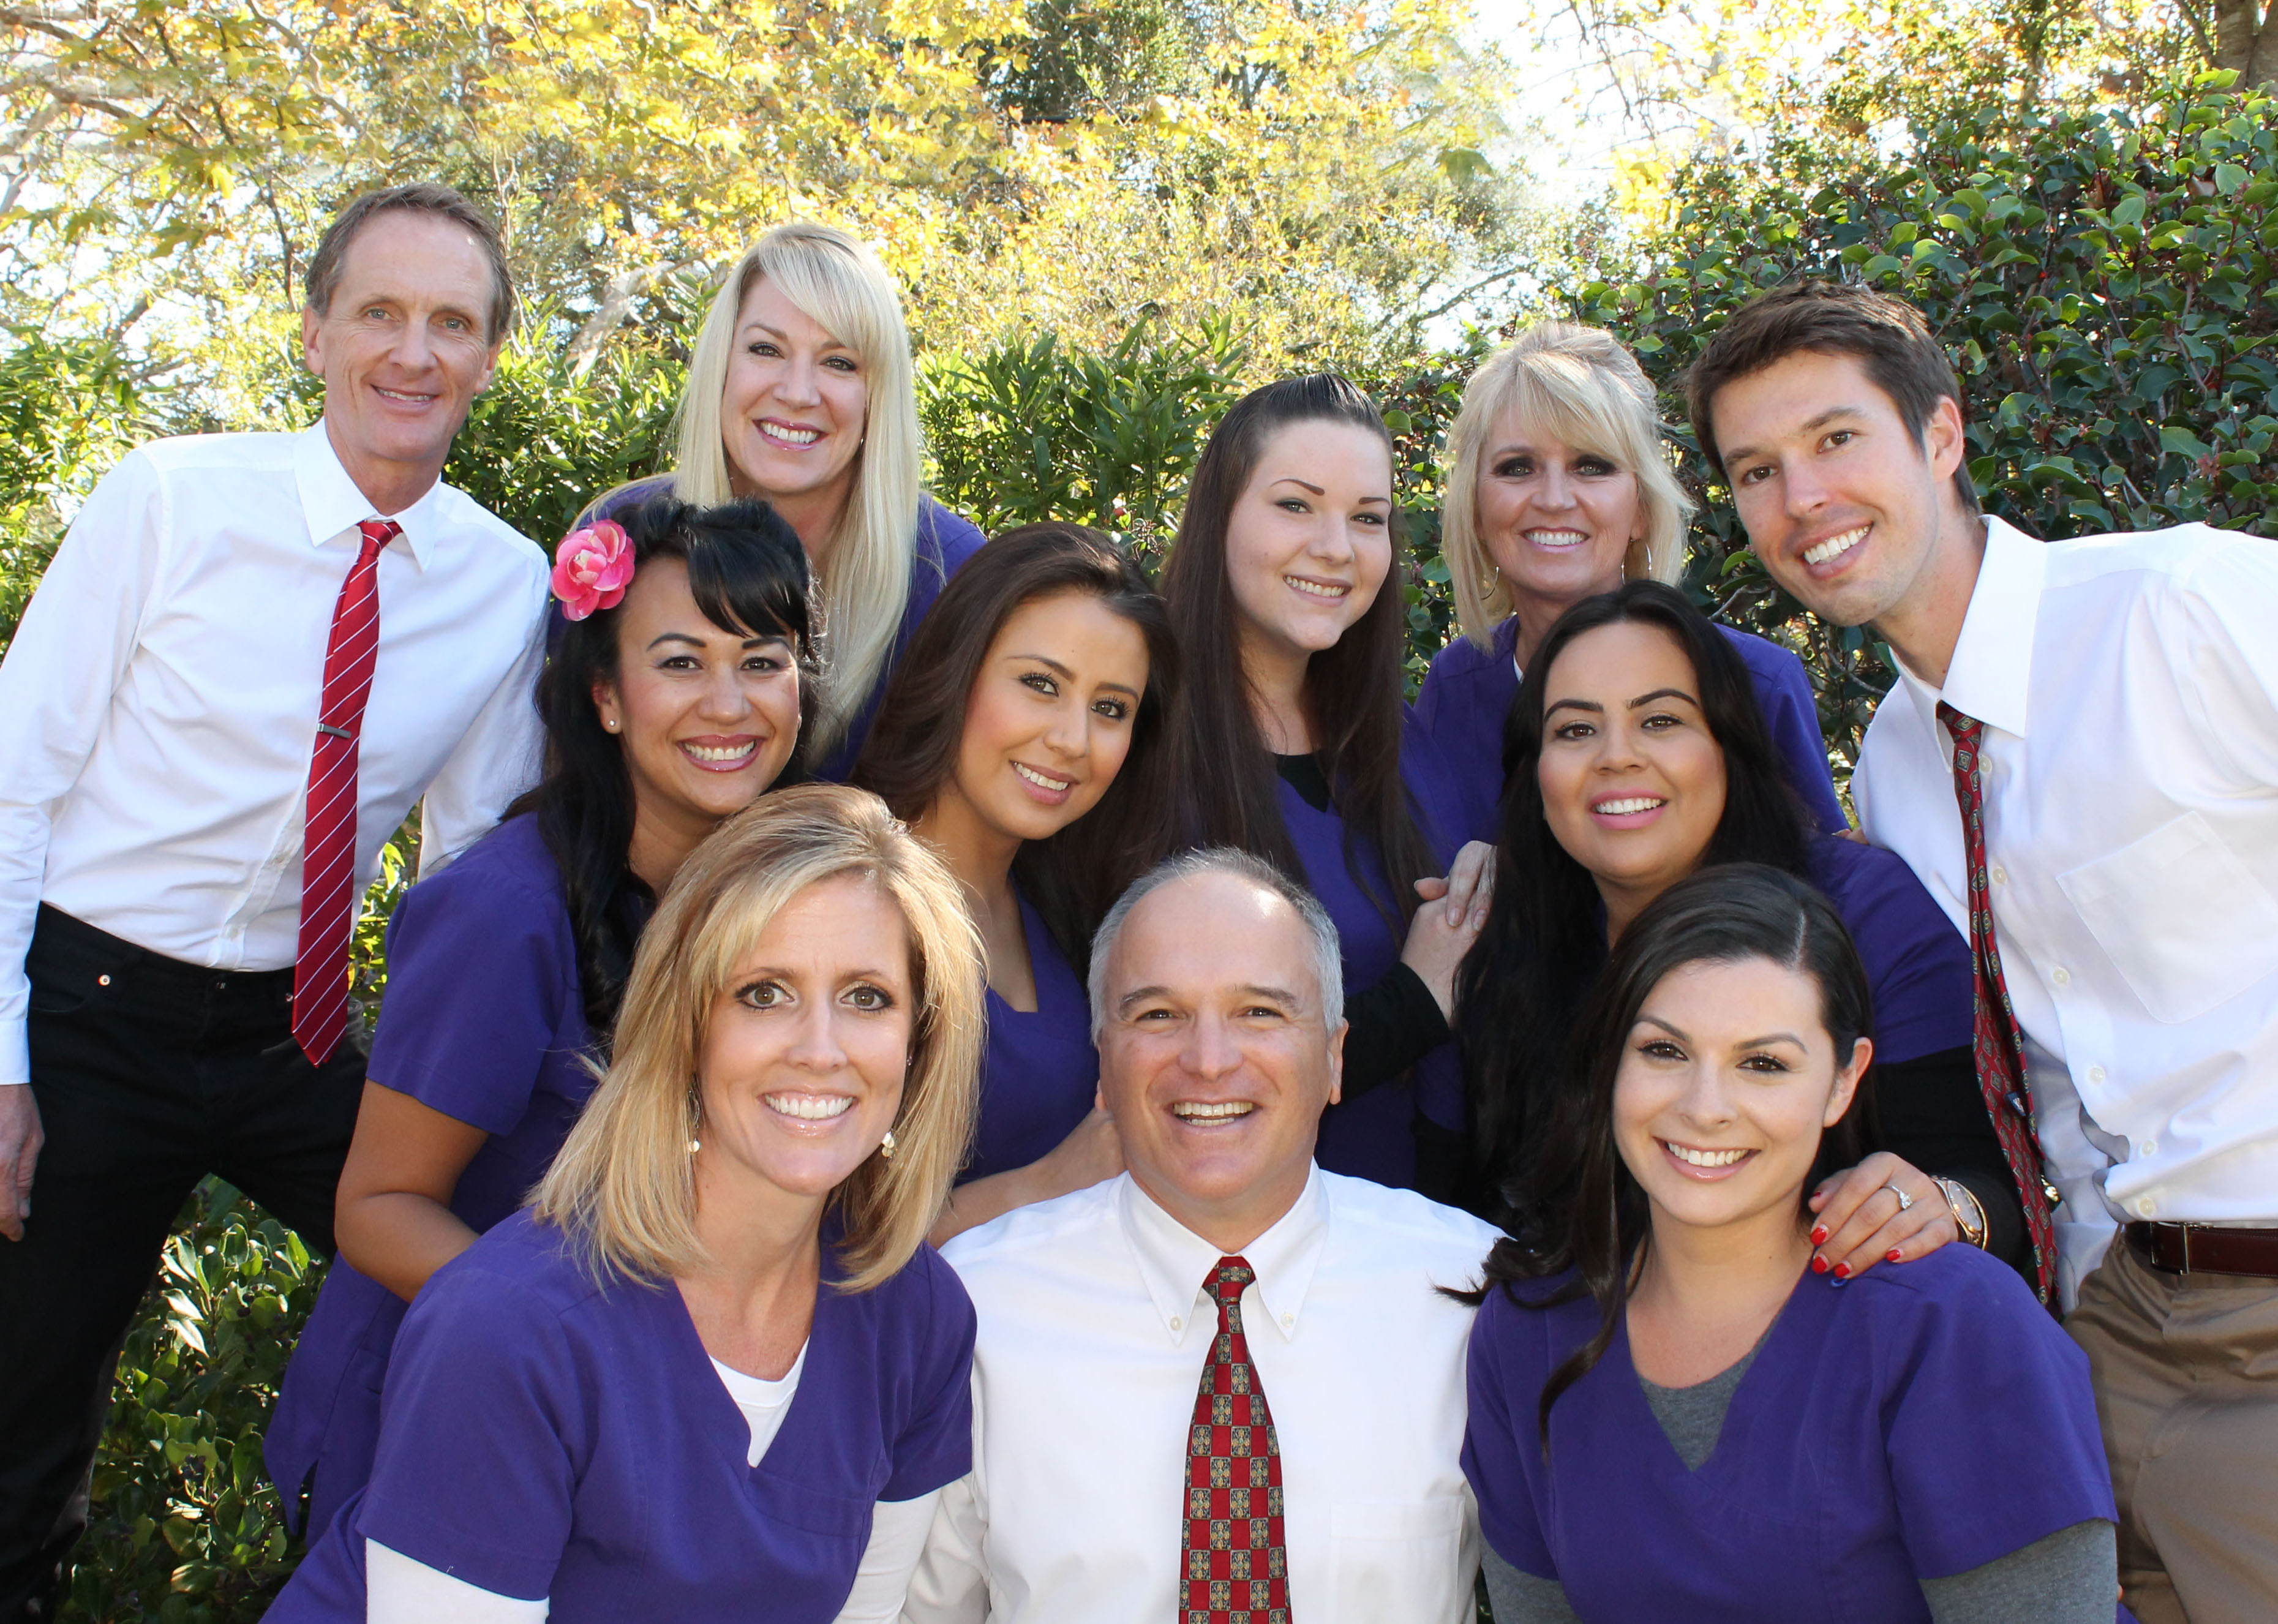 Santa Barbara Top Orthodontists Drs. Edstrom, Trigonis and Swenson and Team 2016